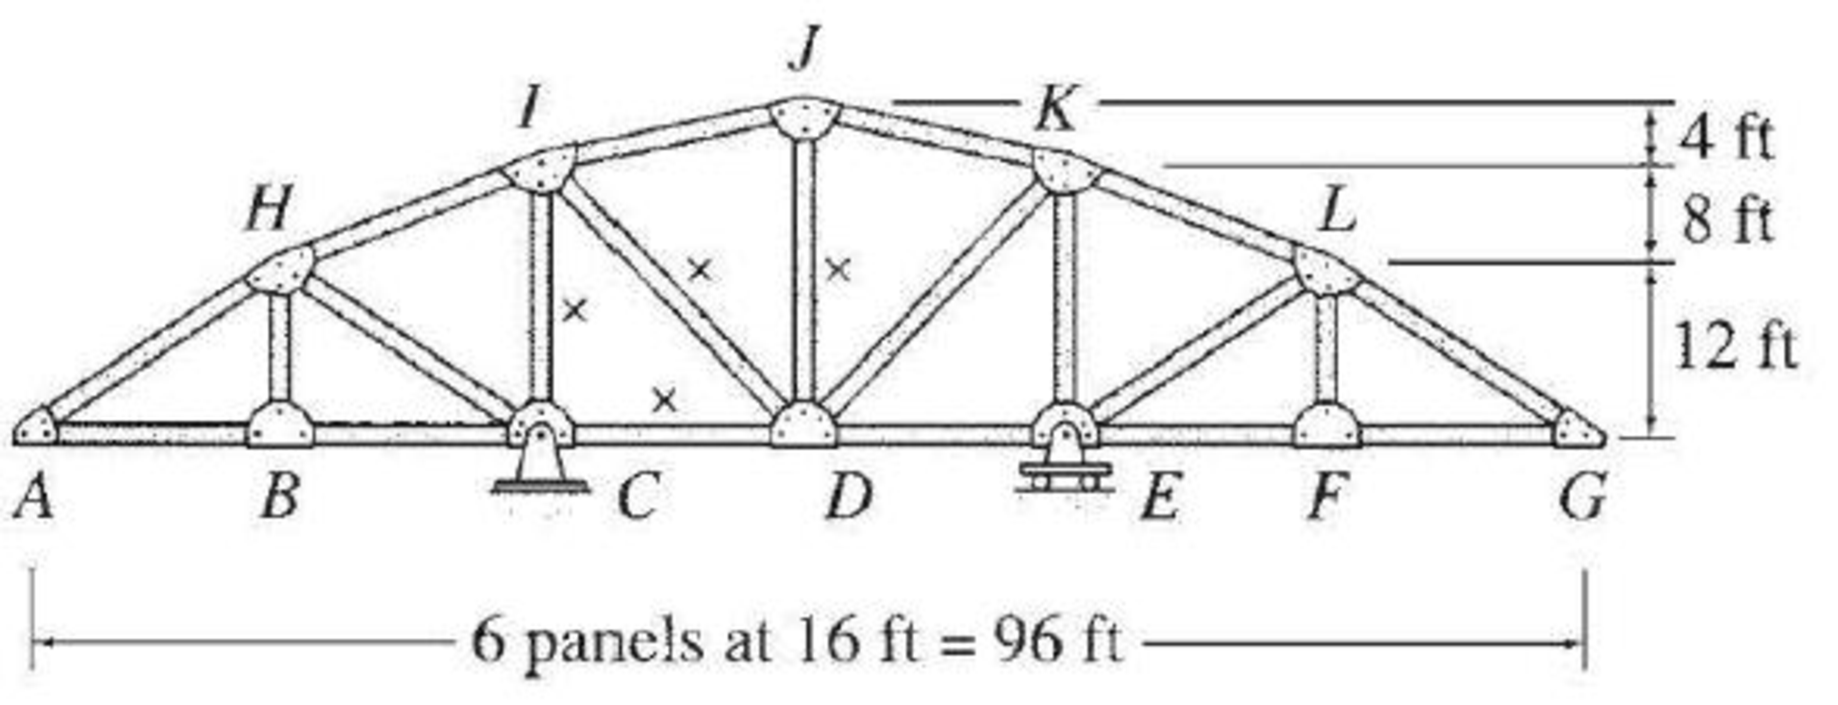 Chapter 9, Problem 11P, For the truss of Problem 8 .51, determine the maximum tensile and compressive axial forces in member